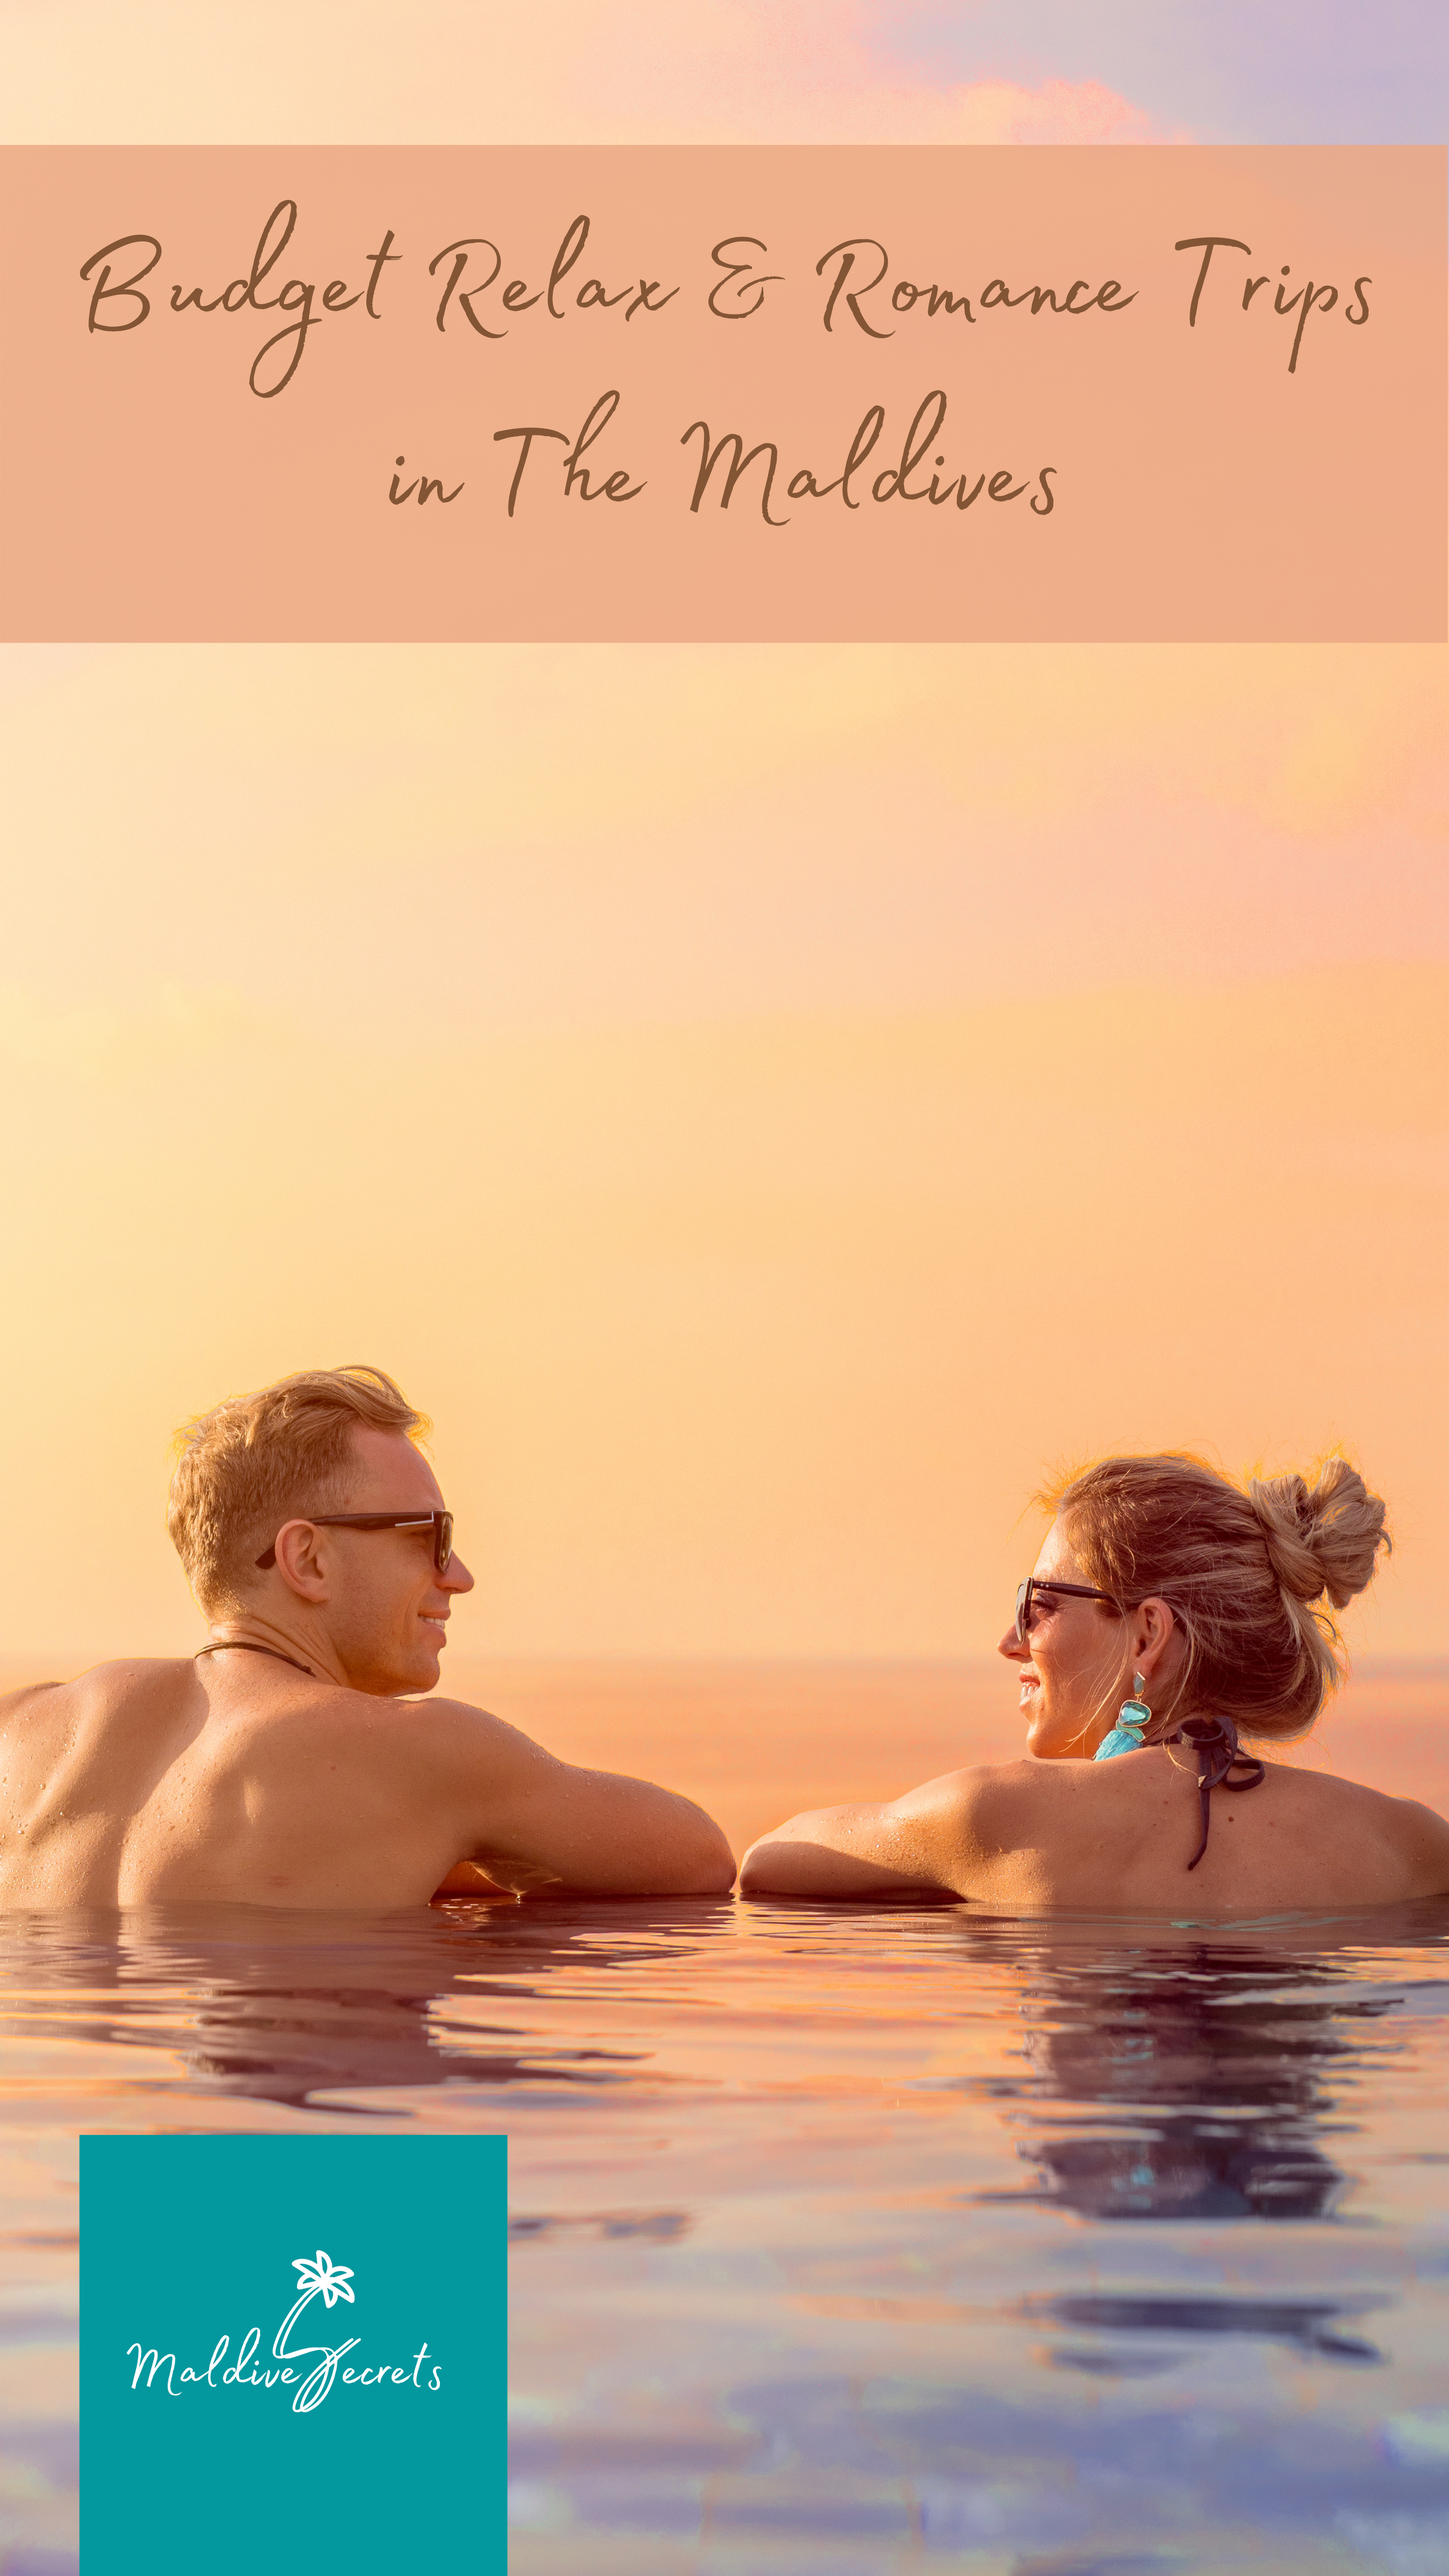 Have a look at our selection of Budget Maldives Relax & Romance Trips! #maldives #maldivessecrets #affordablemaldives #travelagency #budgettravel #traveldeals #maldivesholiday #tropicalholidays #maldiveshotels #maldivesblog #maldivestrip #budgetmaldives #maldivestour #lowcosttrips #maldivespackage #visitmaldives #budgetmaldivestravel